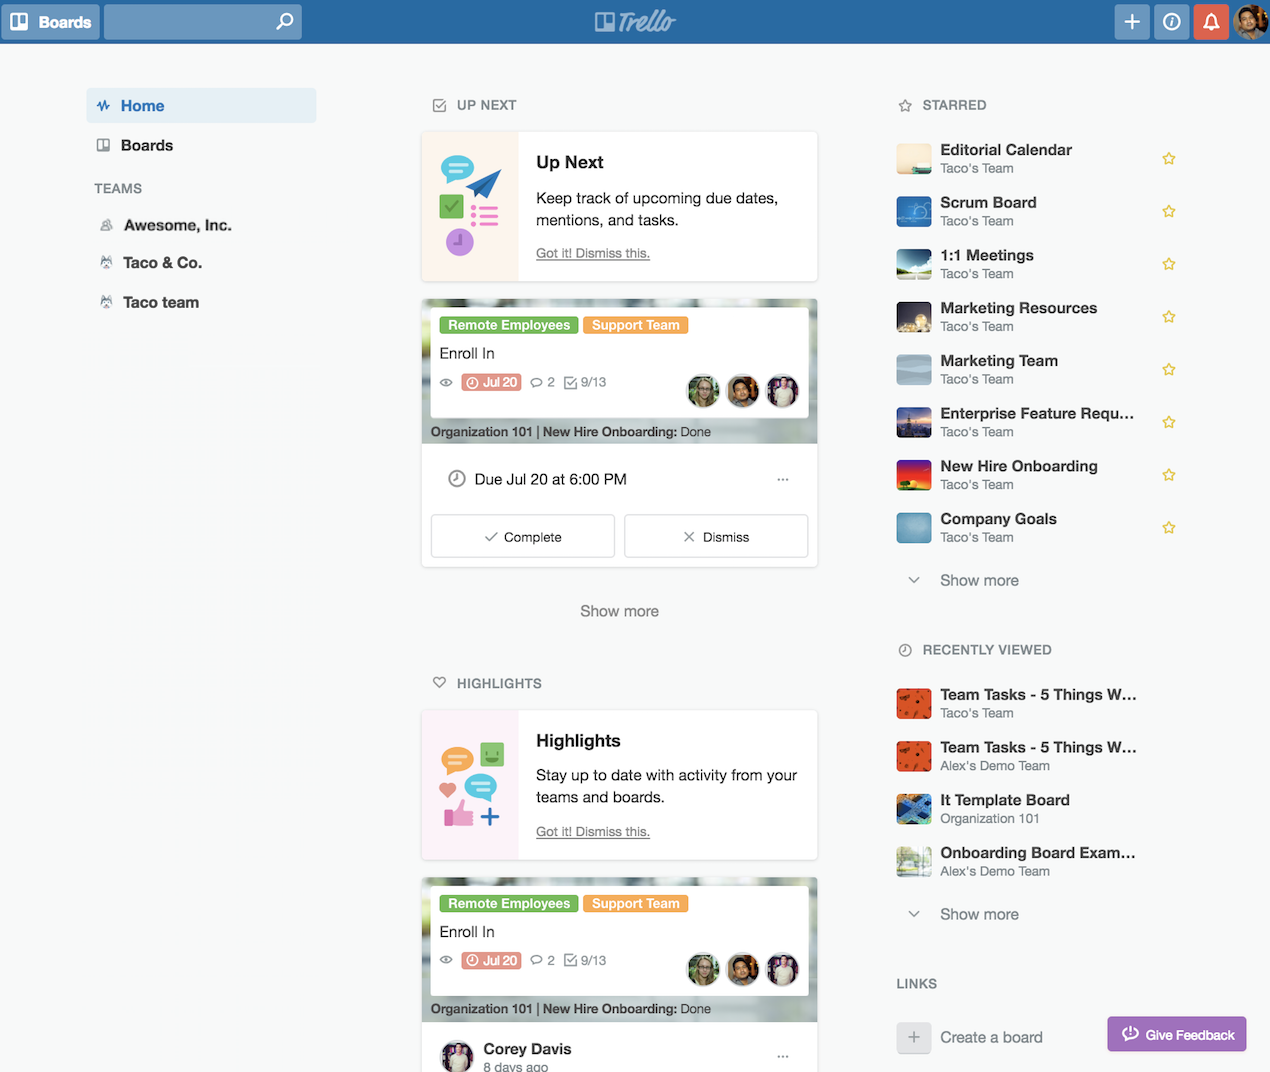 The trello home view provides you with the high level perspective of whats happening at any moment across your teams boards and card activities